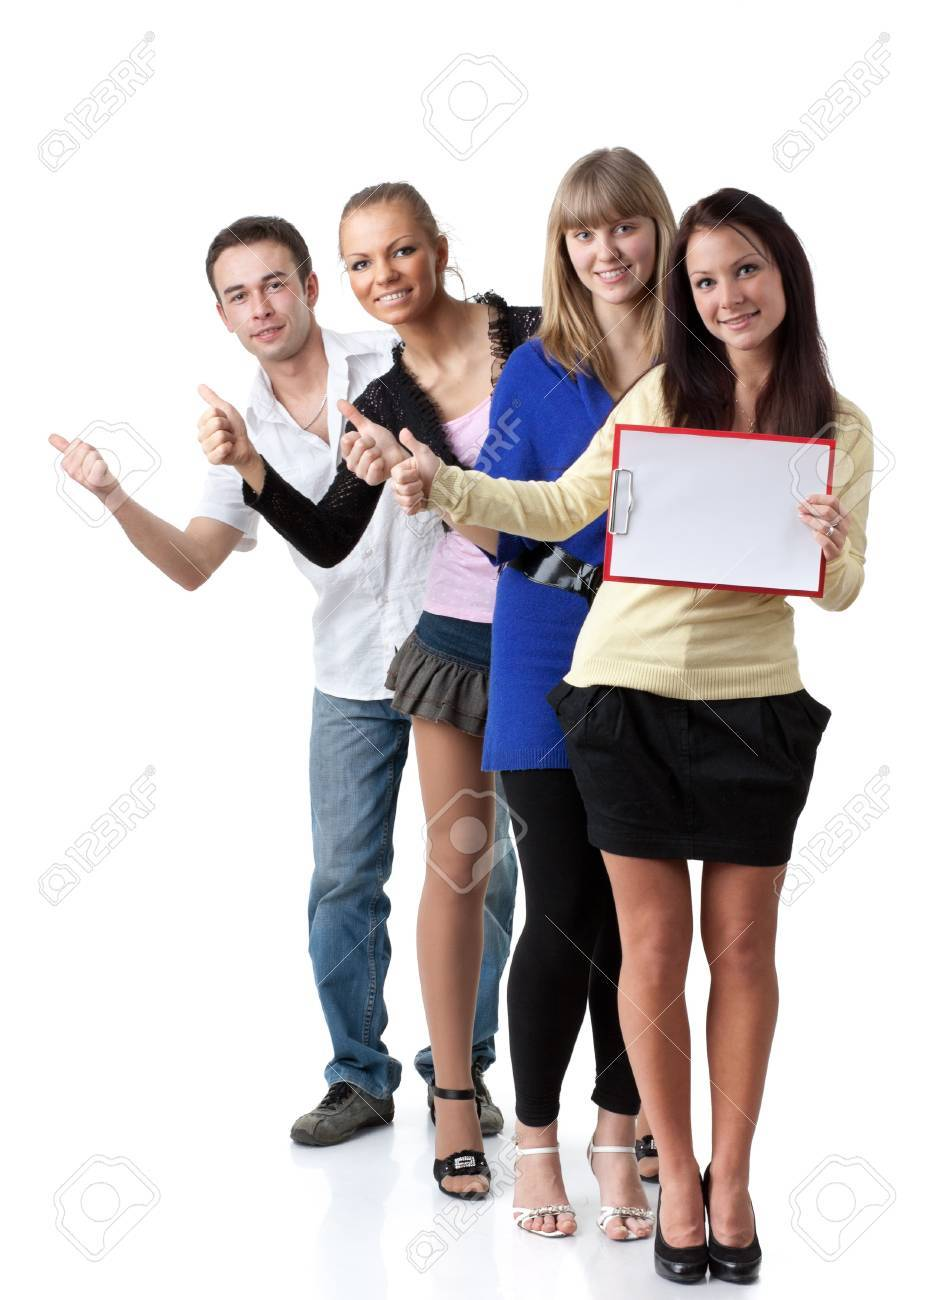 Group of young happy people hitchhiking on a white background. Stock Photo - 9251985